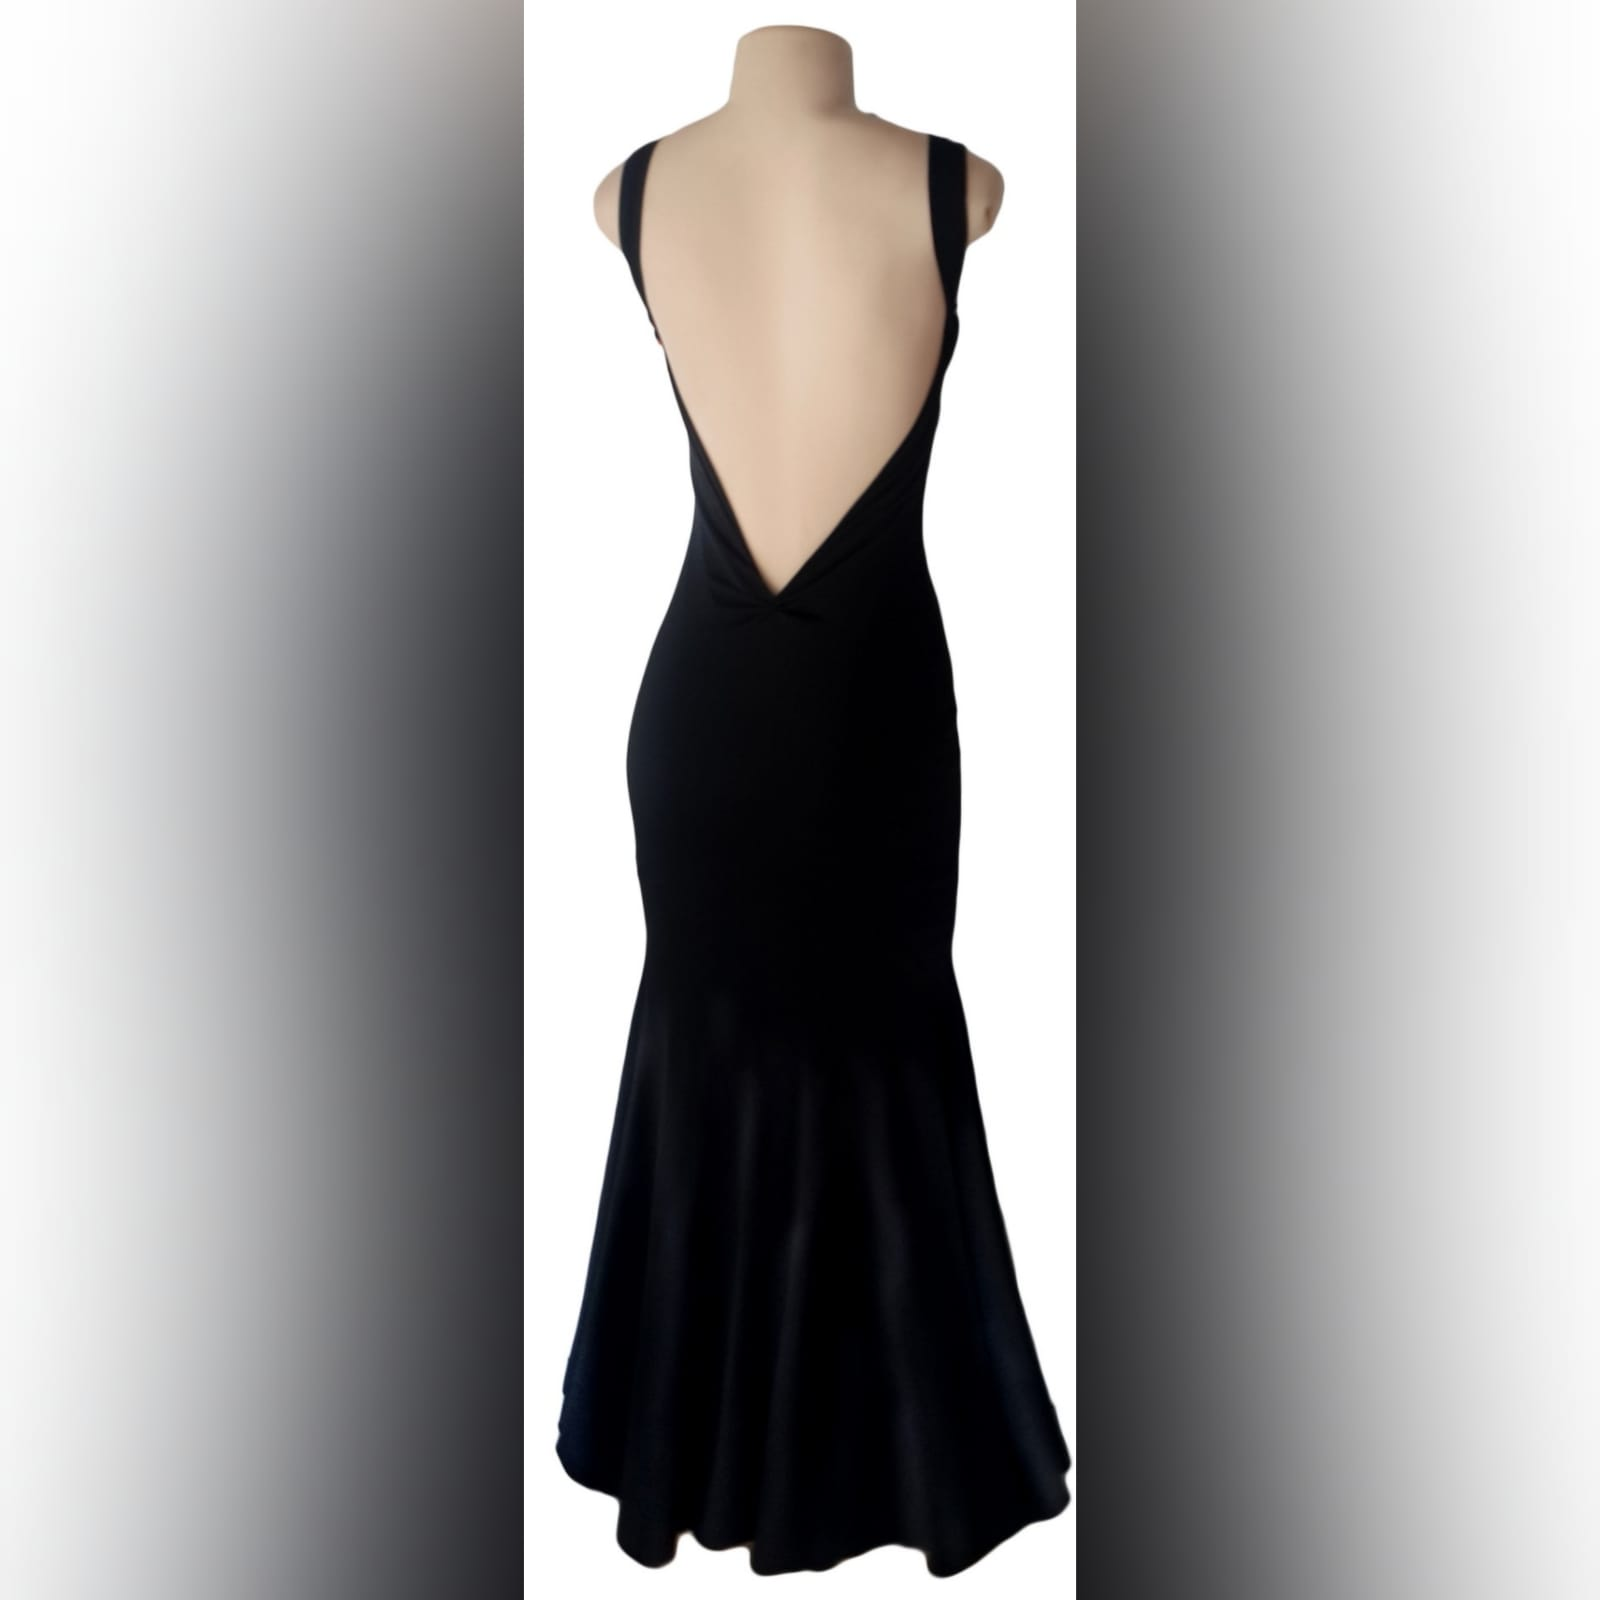 Black sexy evening dress fitted till the hip 3 black sexy evening dress fitted till the hip, with a low v open back. Straps with a sweetheart neckline.